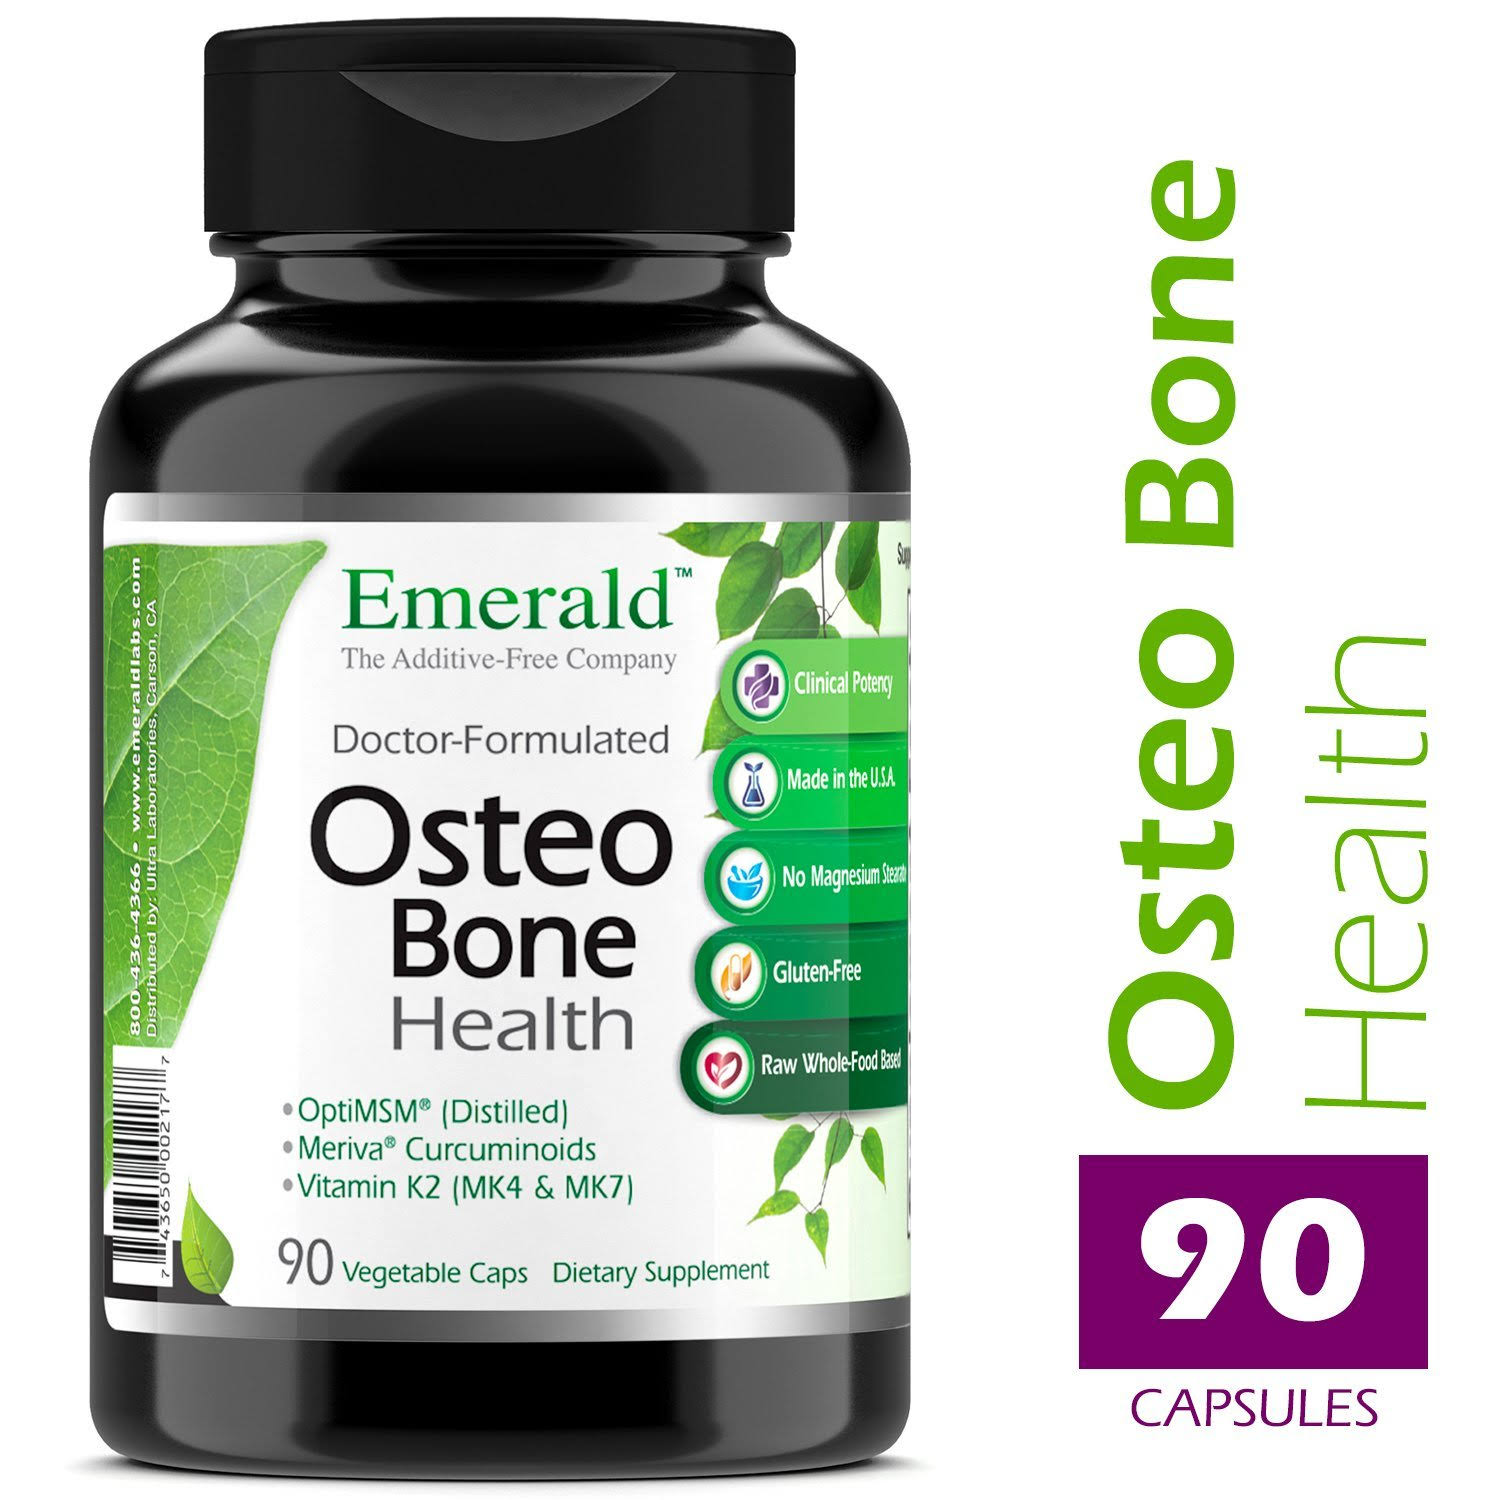 Emerald Laboratories Osteo Bone Health Dietary Supplement - 90 Capsules